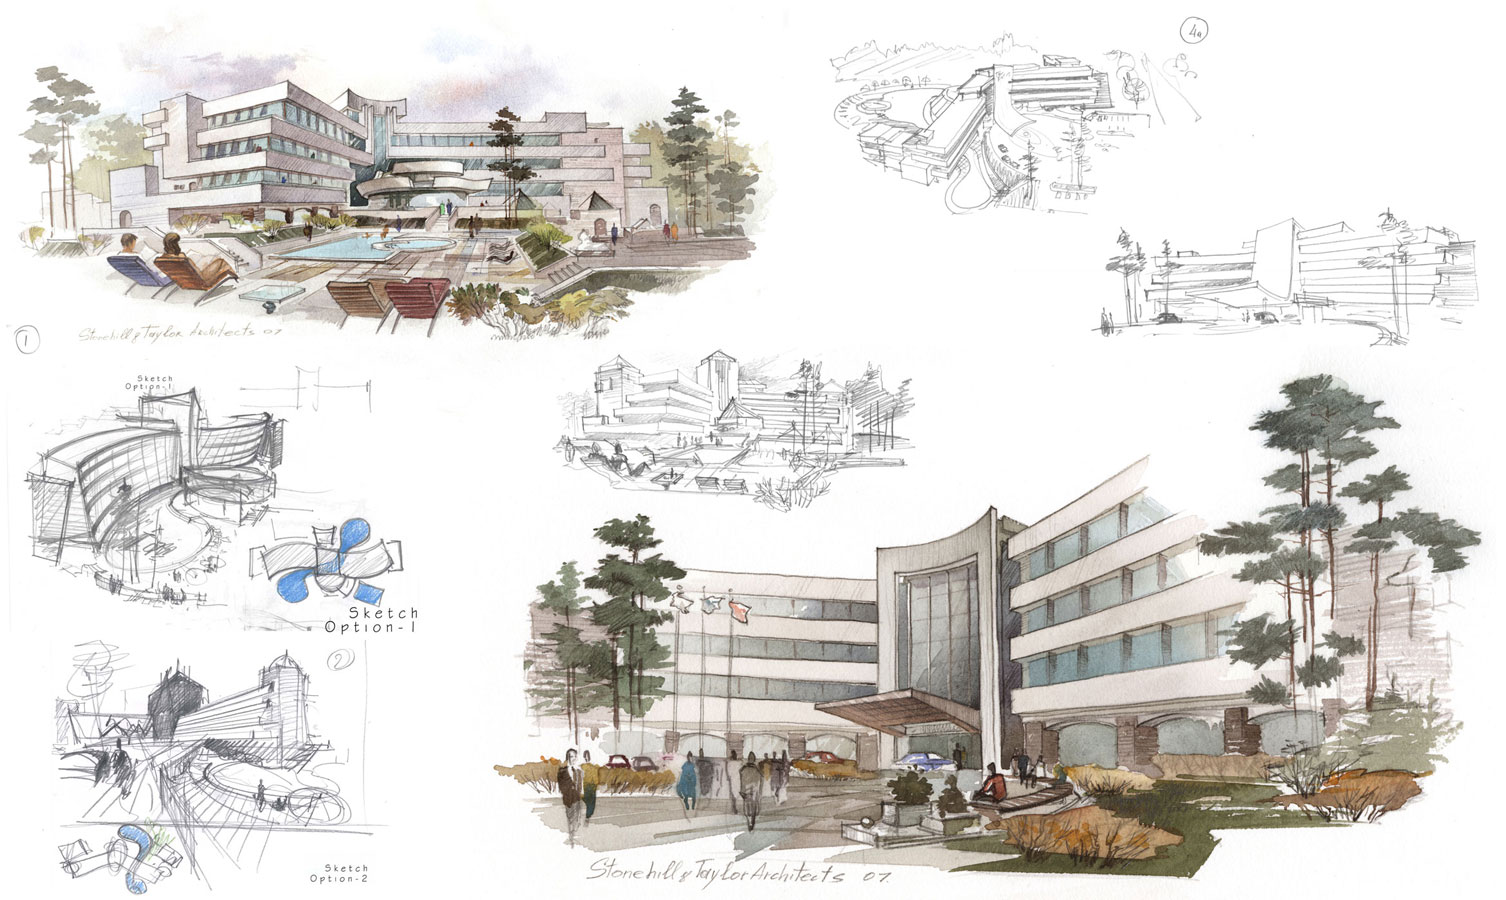 Architectural freehand concept pre-design sketches pencil and watercolor for real estate firm by Shalumov